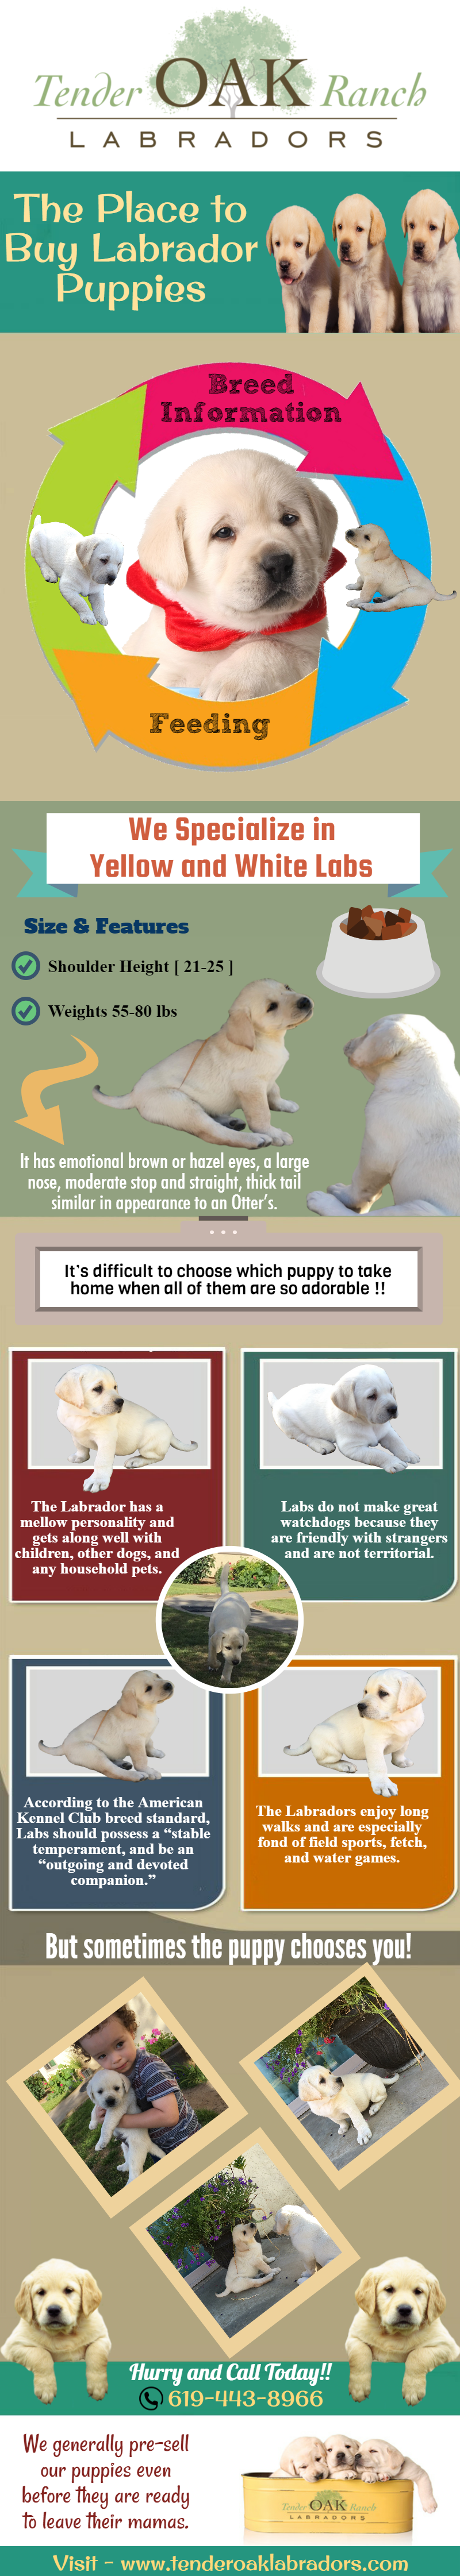 Yellow Lab Puppy For Sale In San Diego Yellow Lab Puppies Lab Puppies Labrador Puppies For Sale